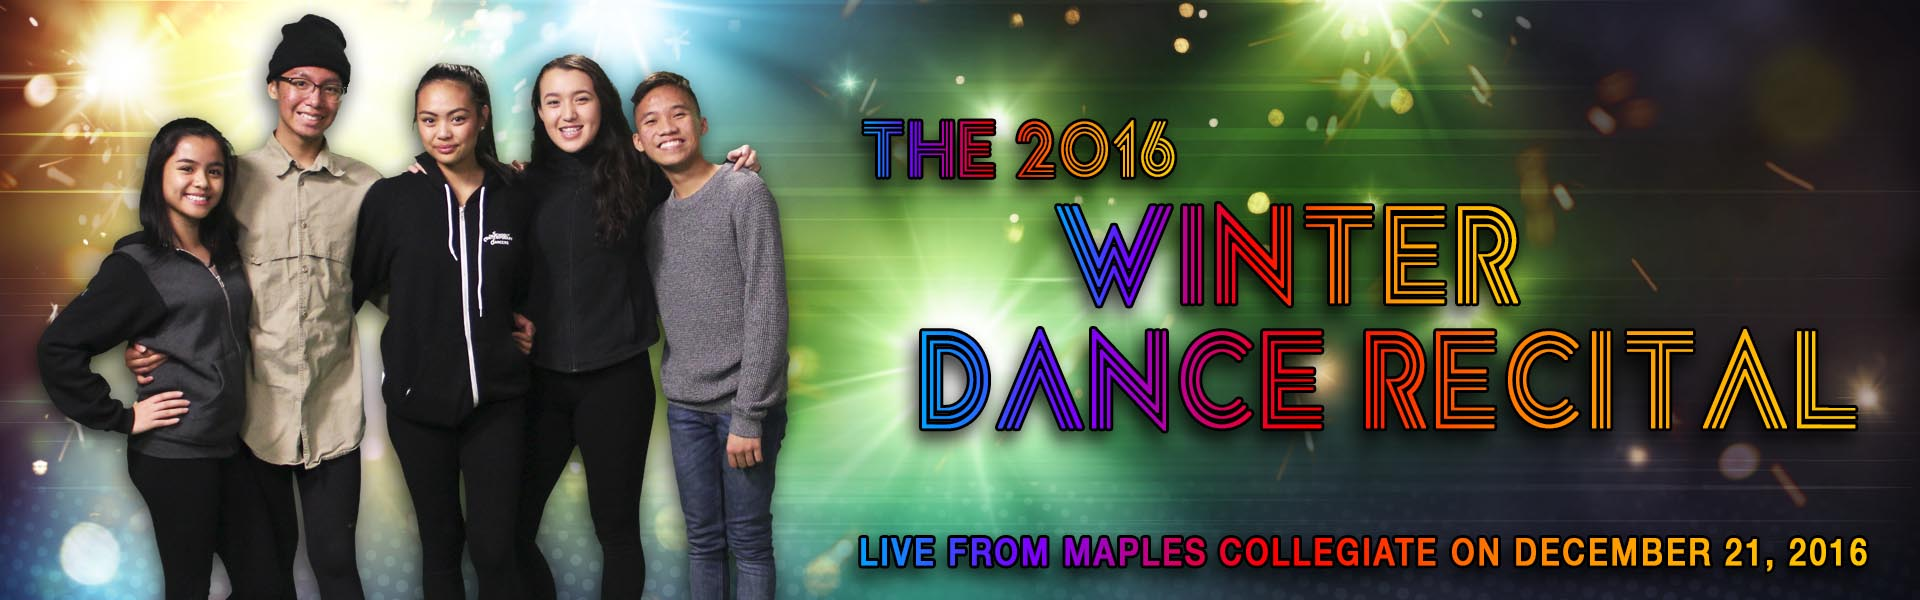 2016 Winter Dance Recital